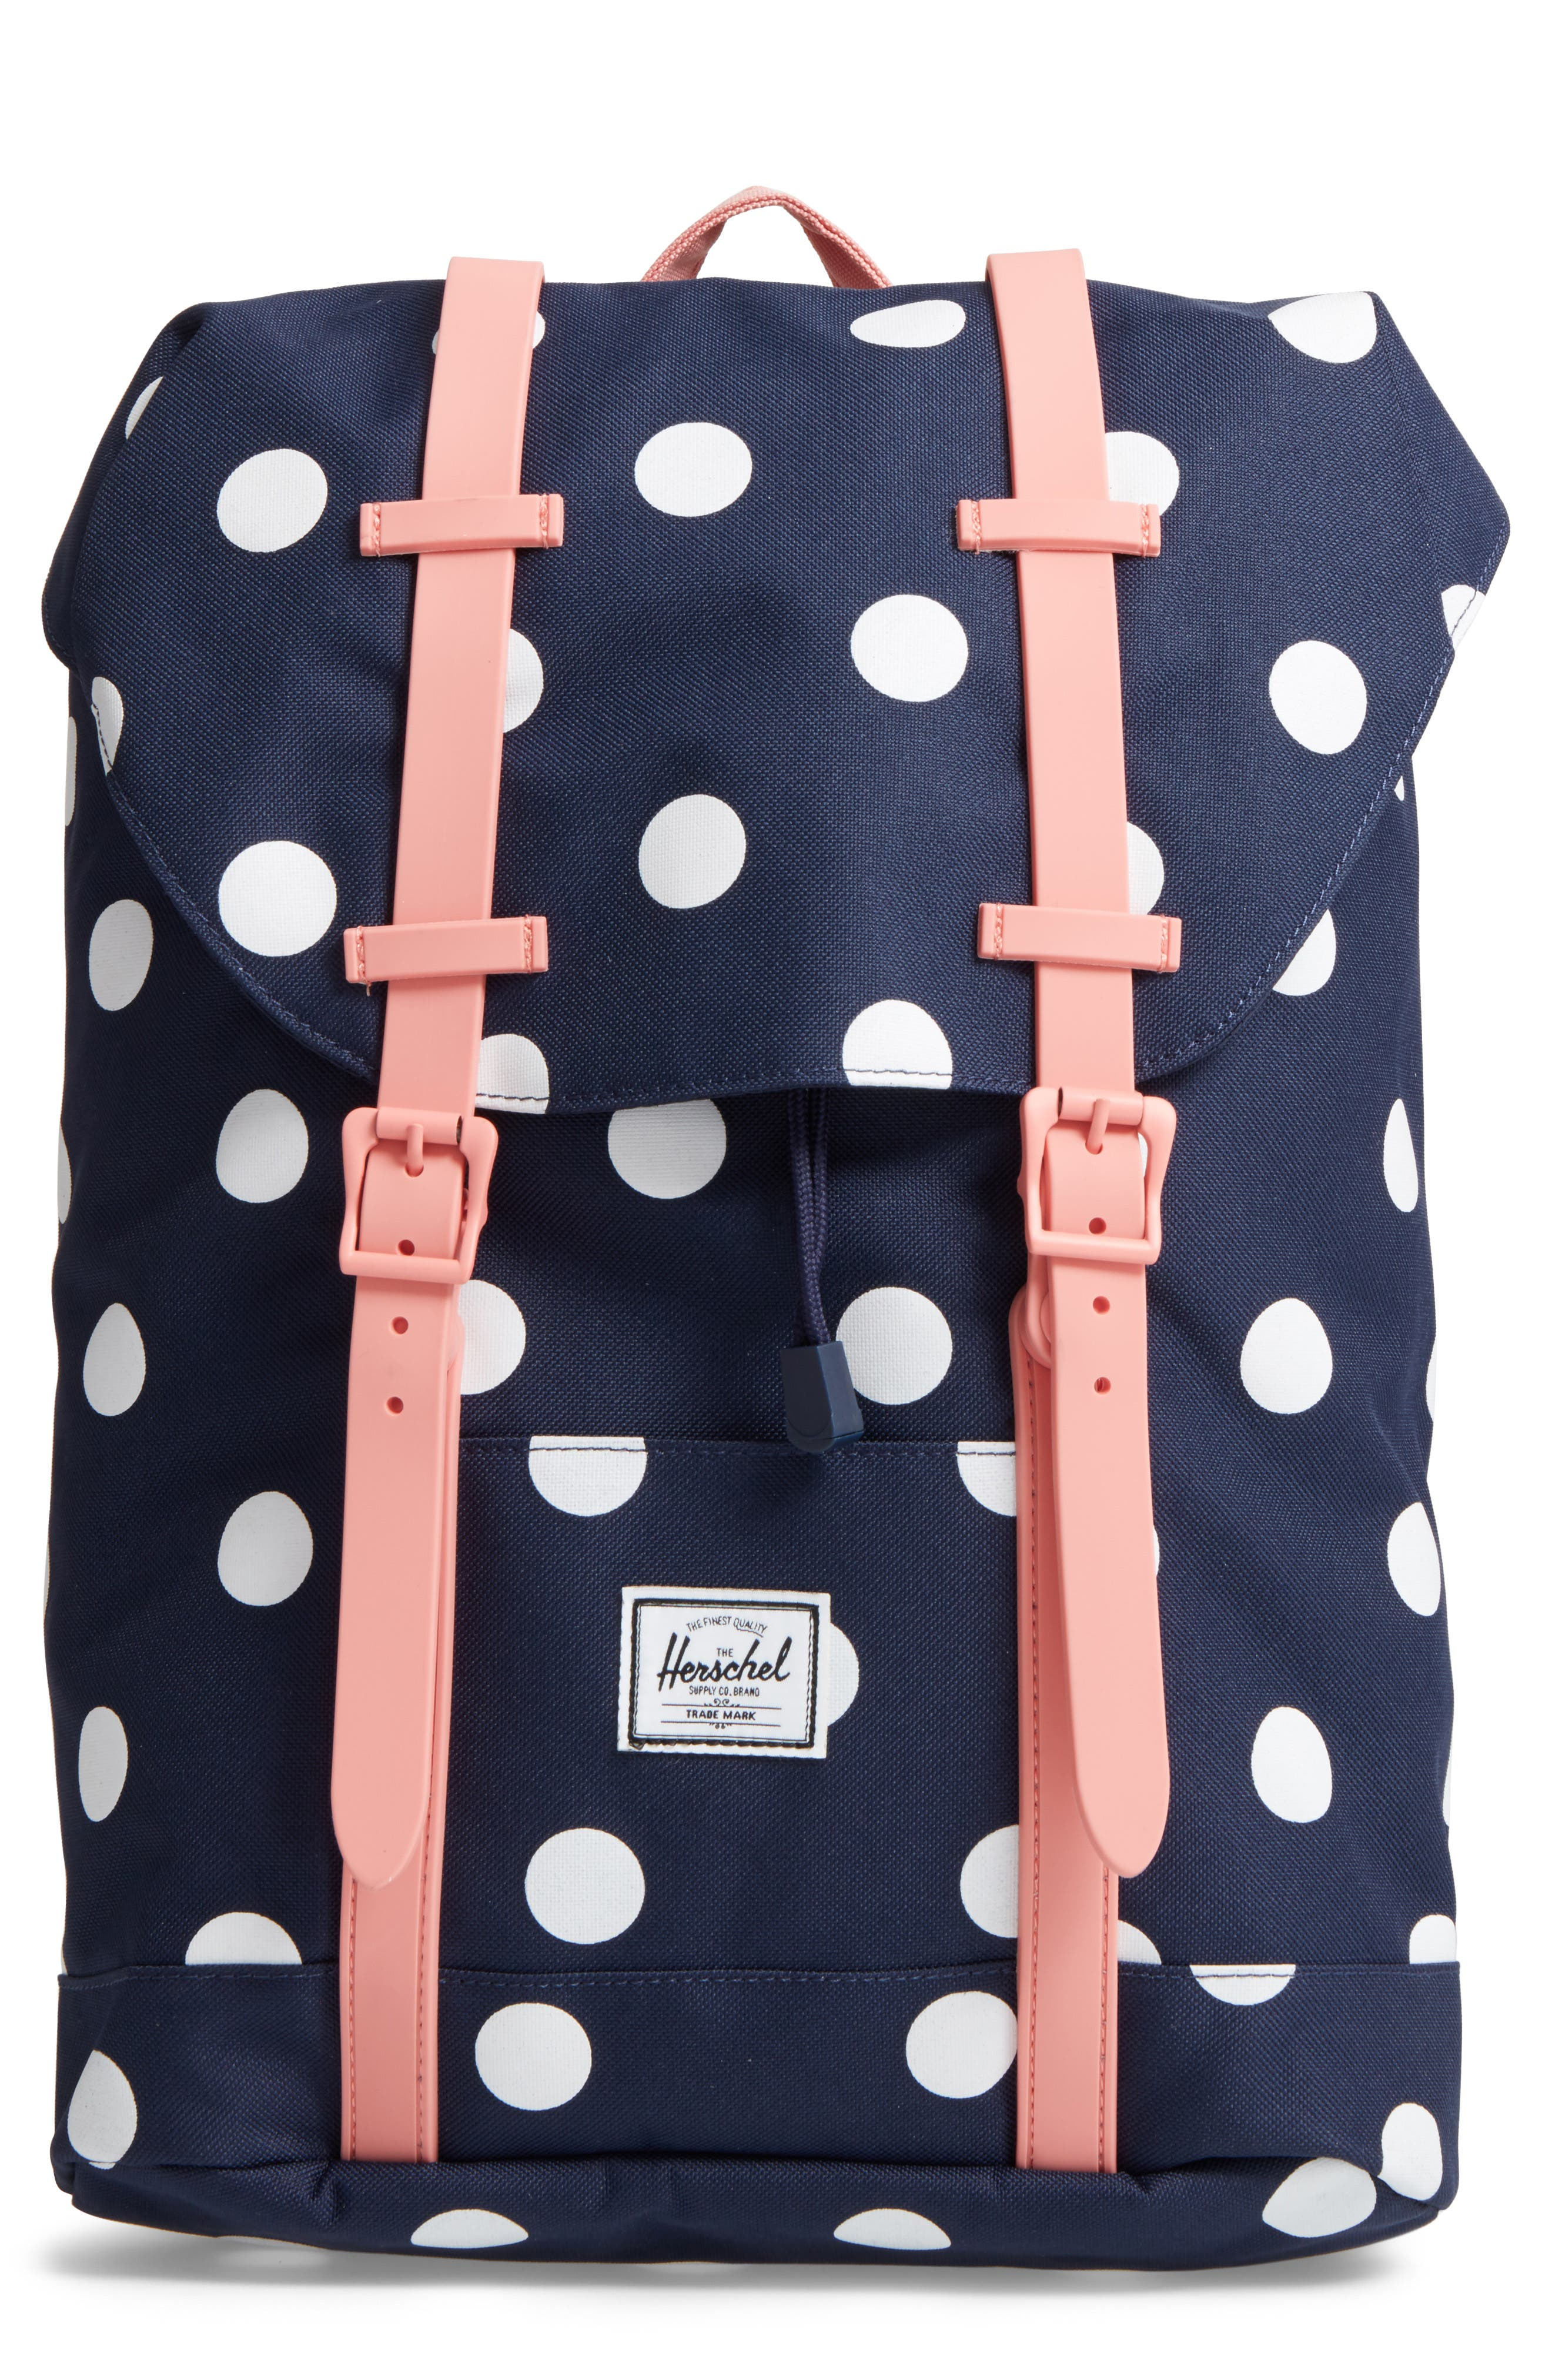 Retreat Backpack,                             Main thumbnail 1, color,                             Polka Dot/ Strawberry